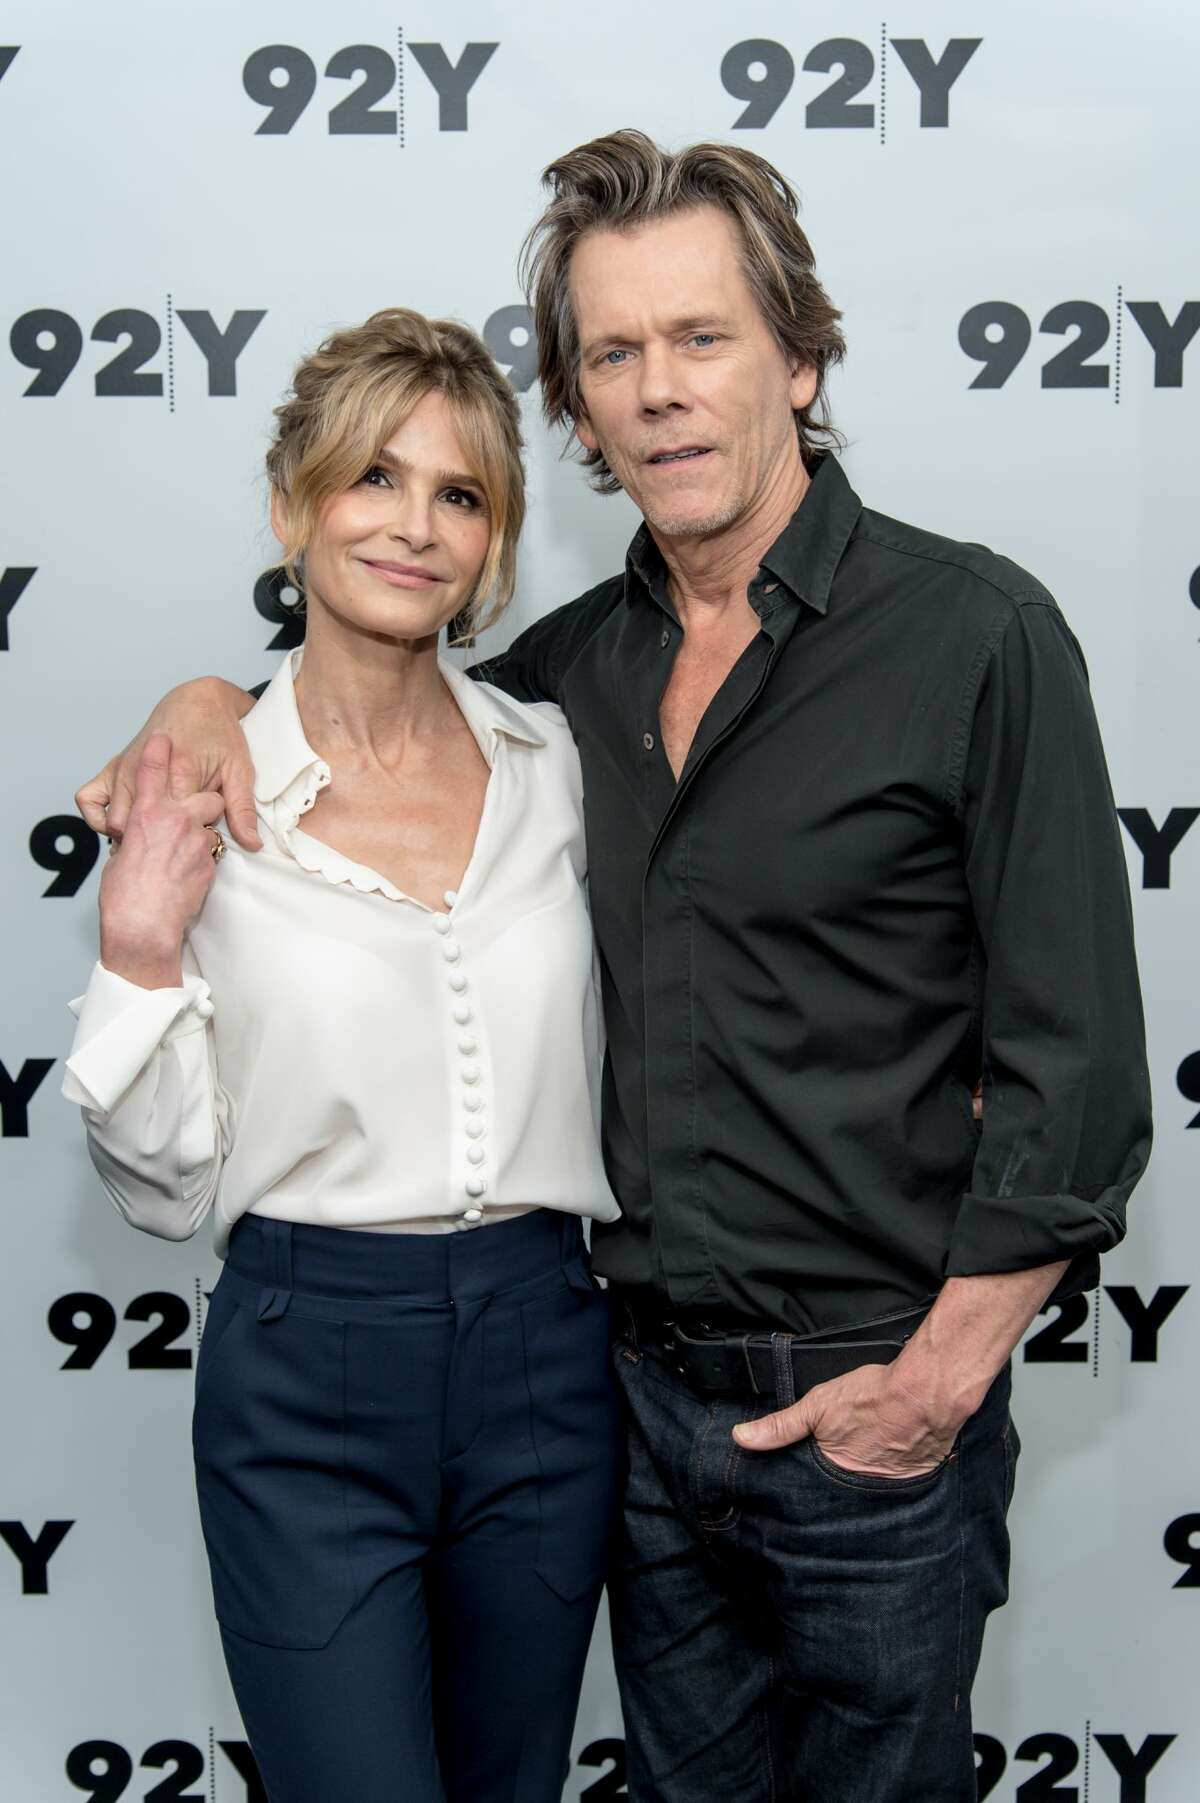 NEW YORK, NY - JULY 19: Actors Kyra Sedgwick and Kevin Bacon in Conversation at 92nd Street Y on July 19, 2017 in New York City. (Photo by Mark Sagliocco/FilmMagic)